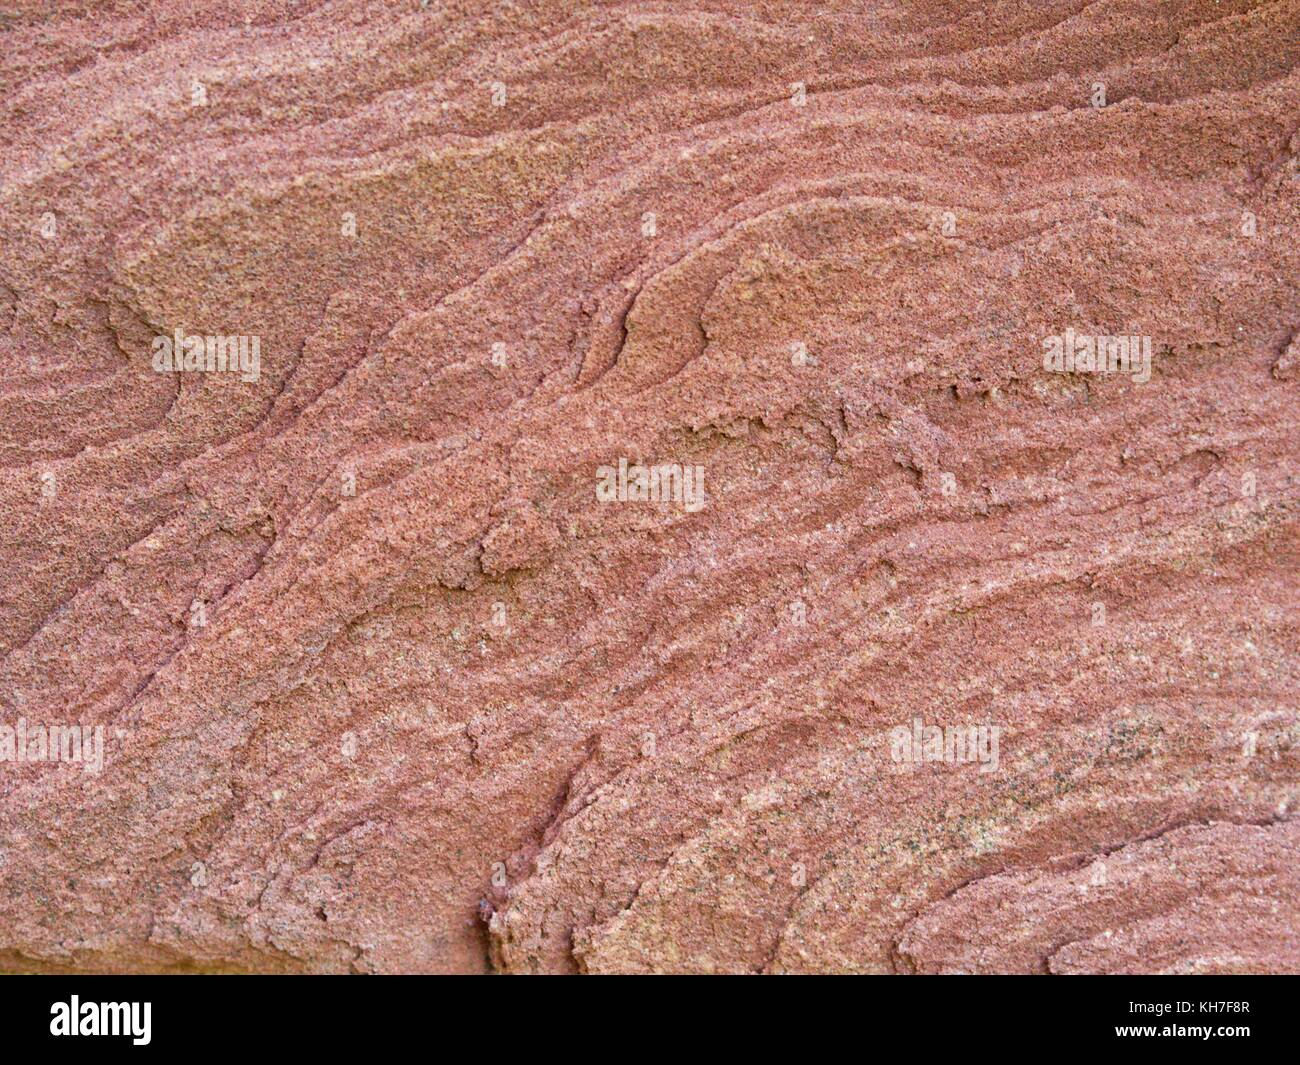 Texture of a reddish rock - Stock Image